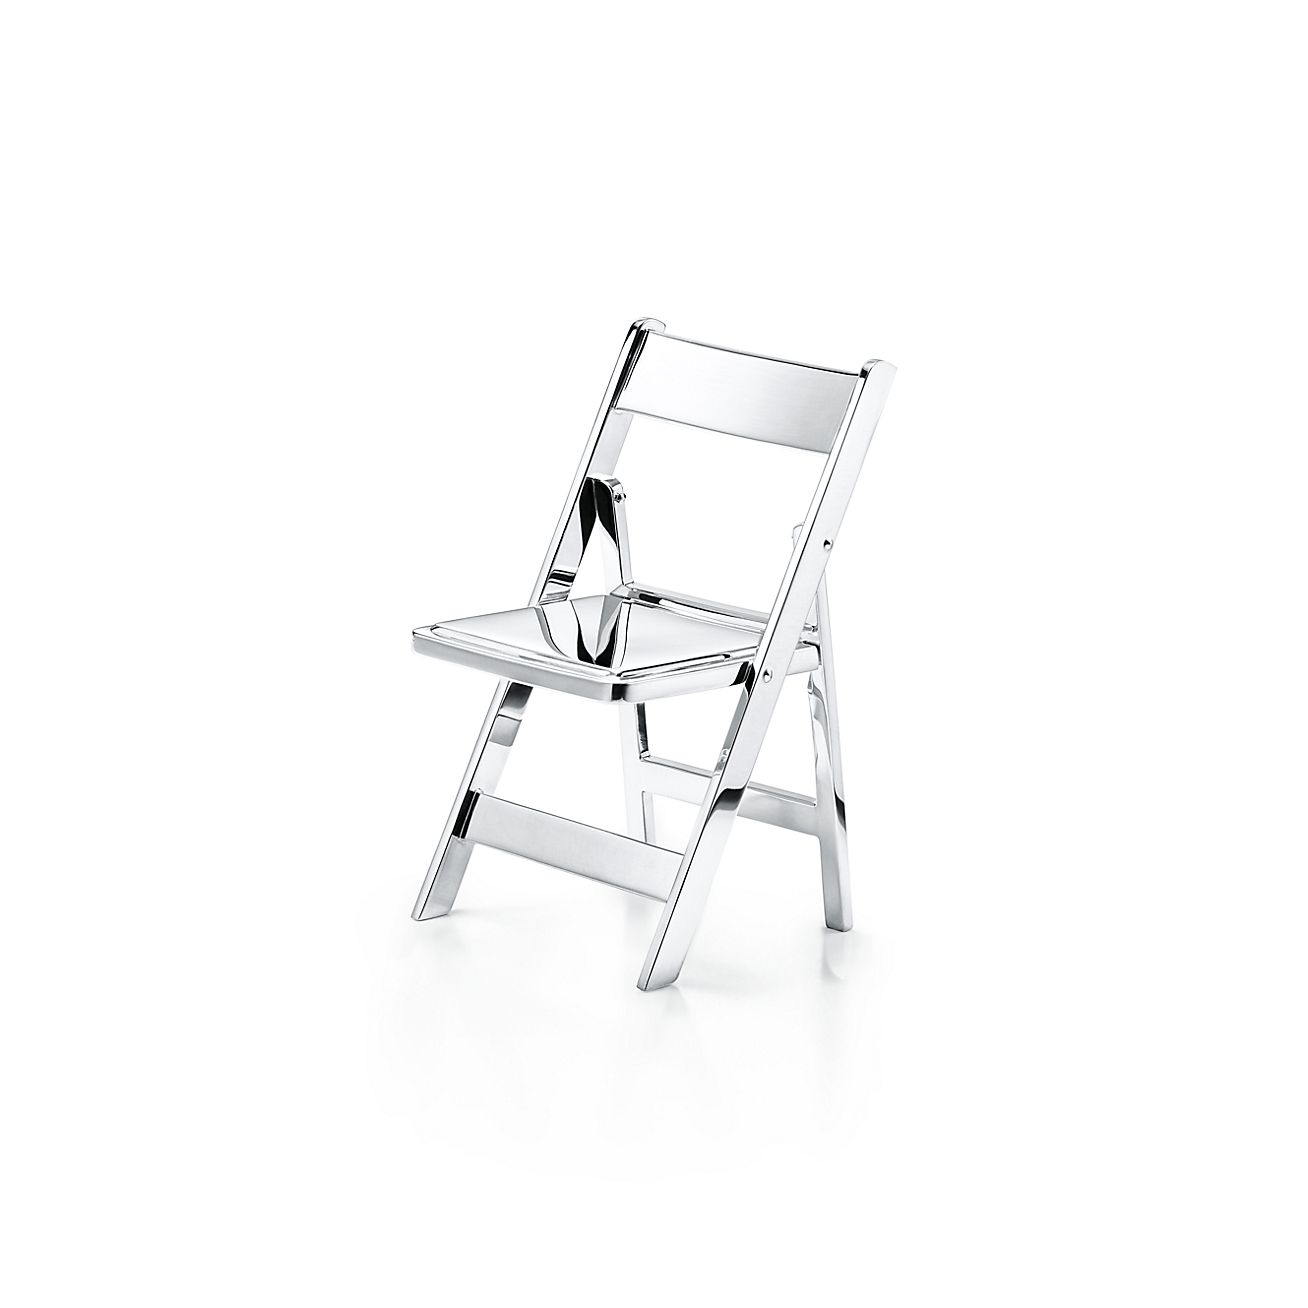 Everyday Objects Sterling Silver Mini Folding Chair. | Tiffany U0026 Co.